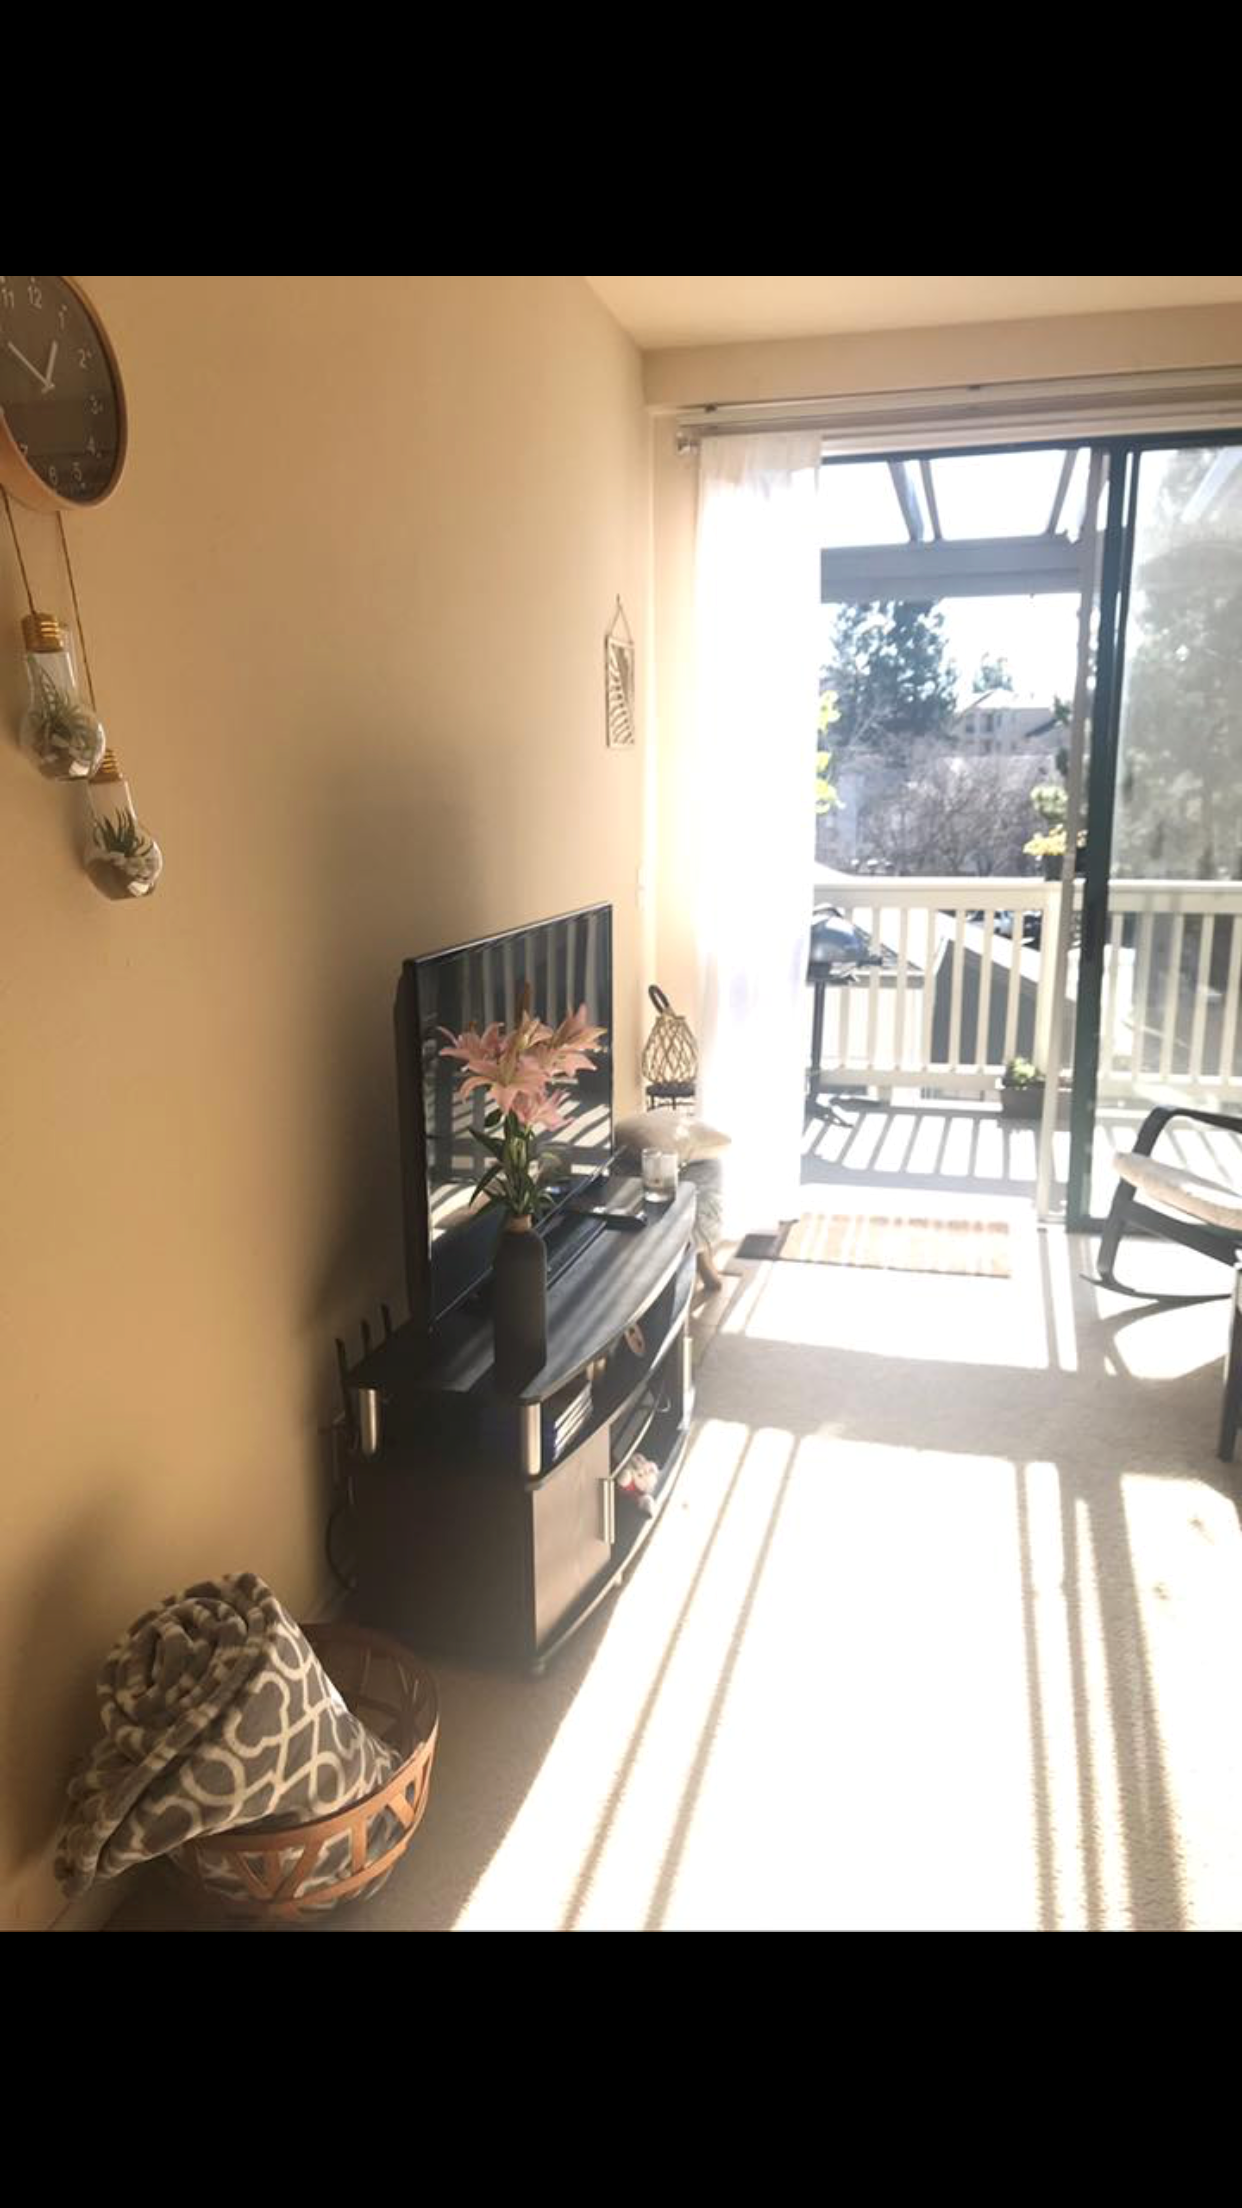 [Urgent][Steal Deal] 1Br1Ba Available Immediately For Sub Lease For $2388